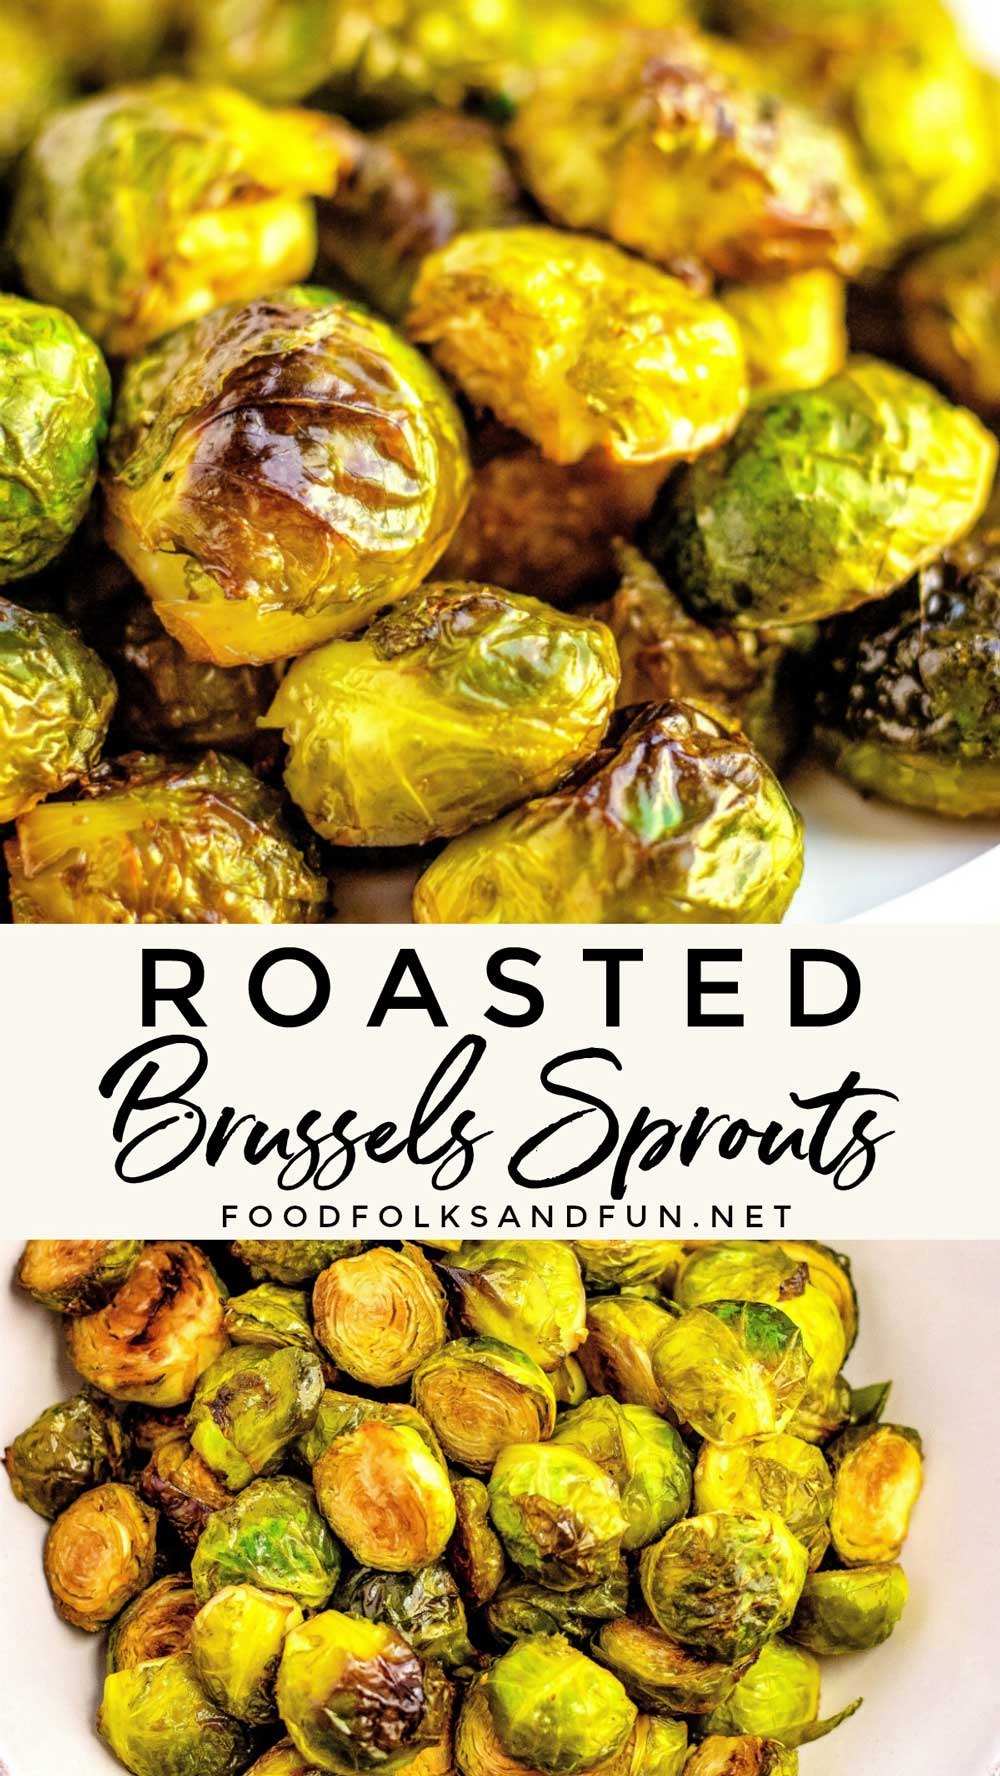 This Roasted Brussels Sprouts recipe is a quick and easy way to bring these tiny cabbages to life. They're caramelized on the outside and tender on the inside. #sidedish #easysidedish #easyrecipe #healthyrecipe #healthysidedish #Thanksgiving #ThanksgivingRecipe #Christmas #ChristmasRecipe #Easter #EasterRecipe #recipeofthedy #recipeoftheweek #LowCarb #LowCarbRecipe #foodfolksandfun via @foodfolksandfun